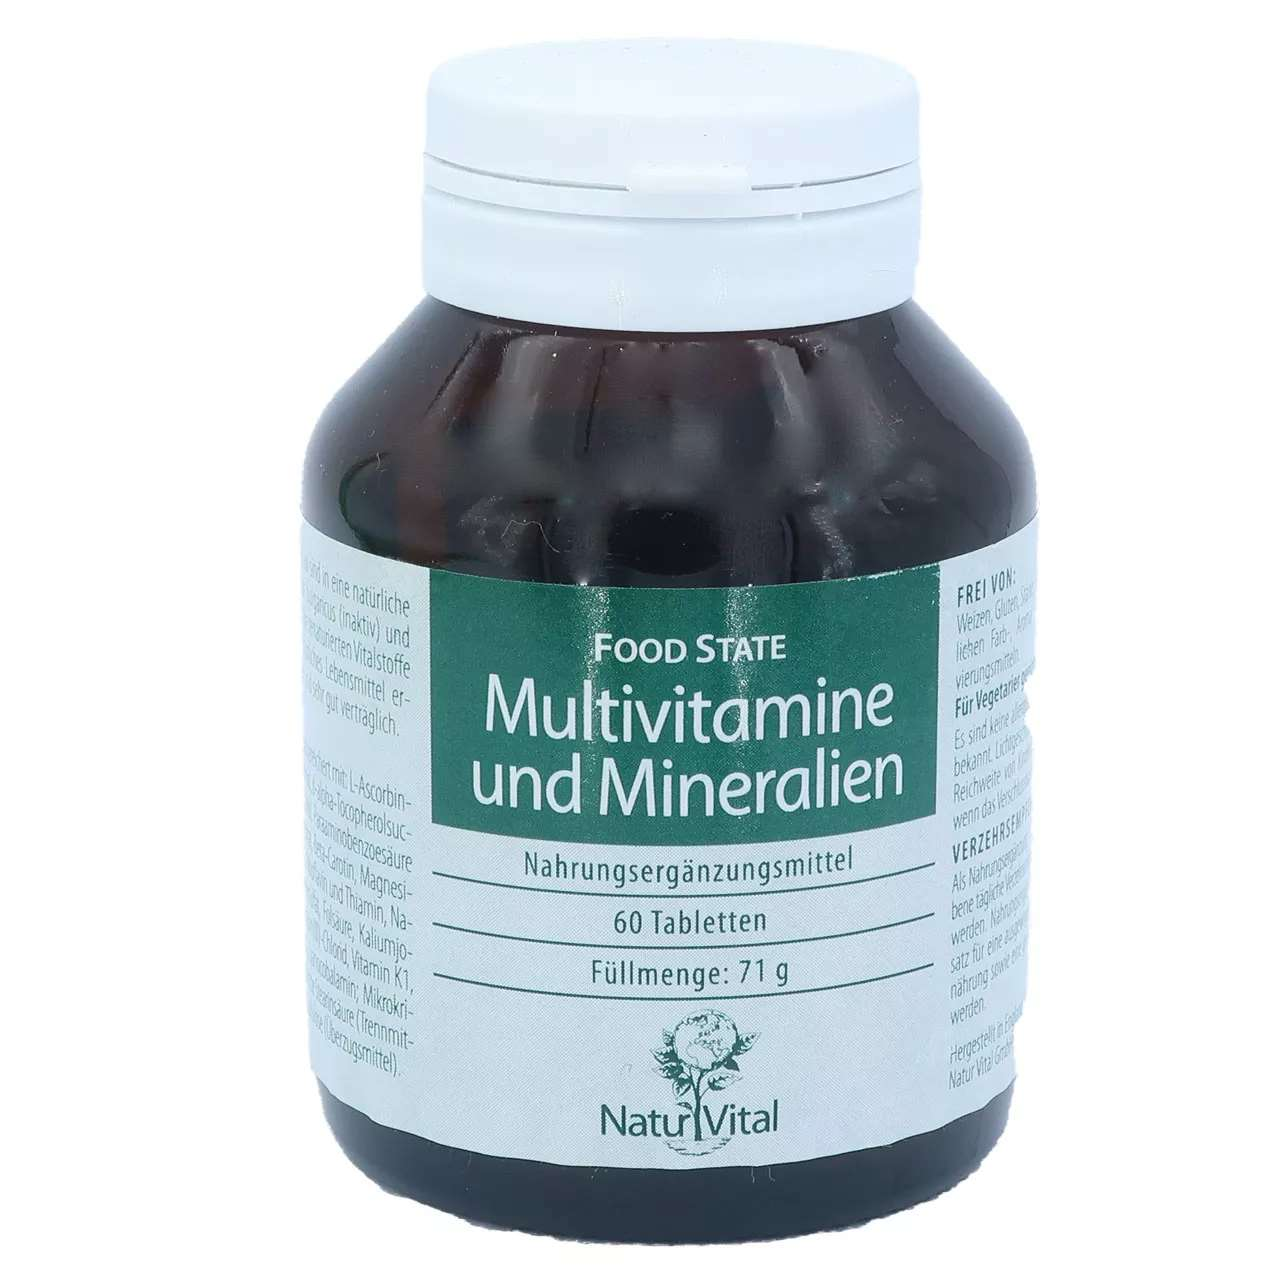 Multivitamine und Mineralien FOOD STATE, 60 Tabletten